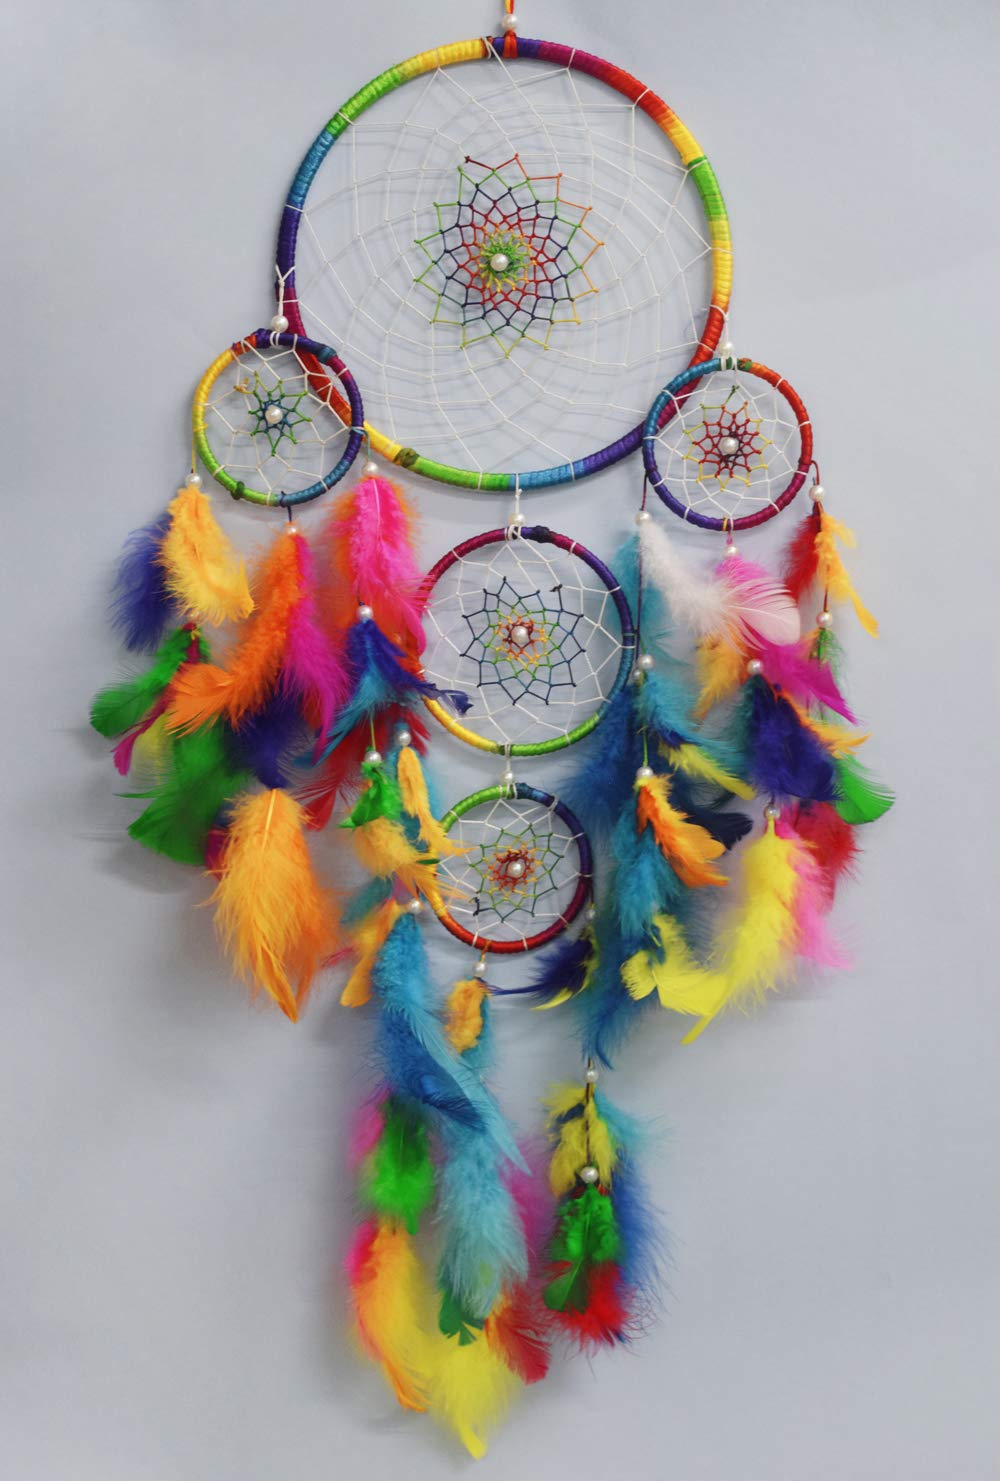 Asian Hobby Crafts Handcrafted Dream Catcher Wall Hanging with Natural Feathers – Traditional Multicolor Boho Style for Room Decor, Baby Shower, Gifting, Size – 25 x 8 inches (L x Dia)